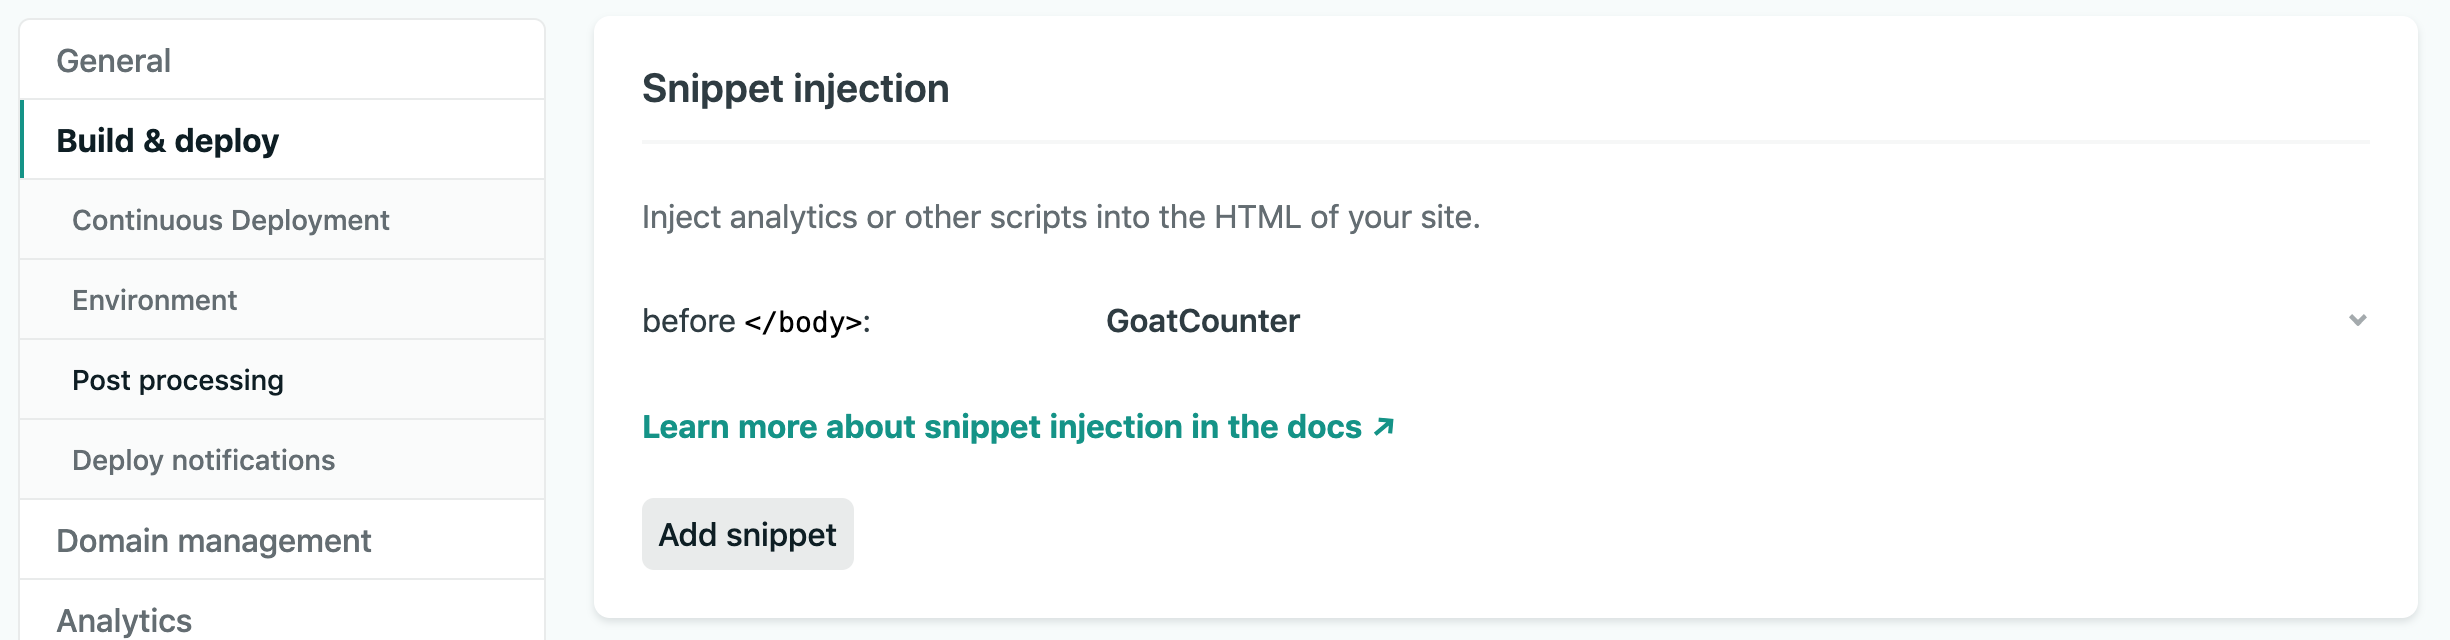 Netlify's HTML injection option confirming the GoatCounter code snippet used to count page visits.